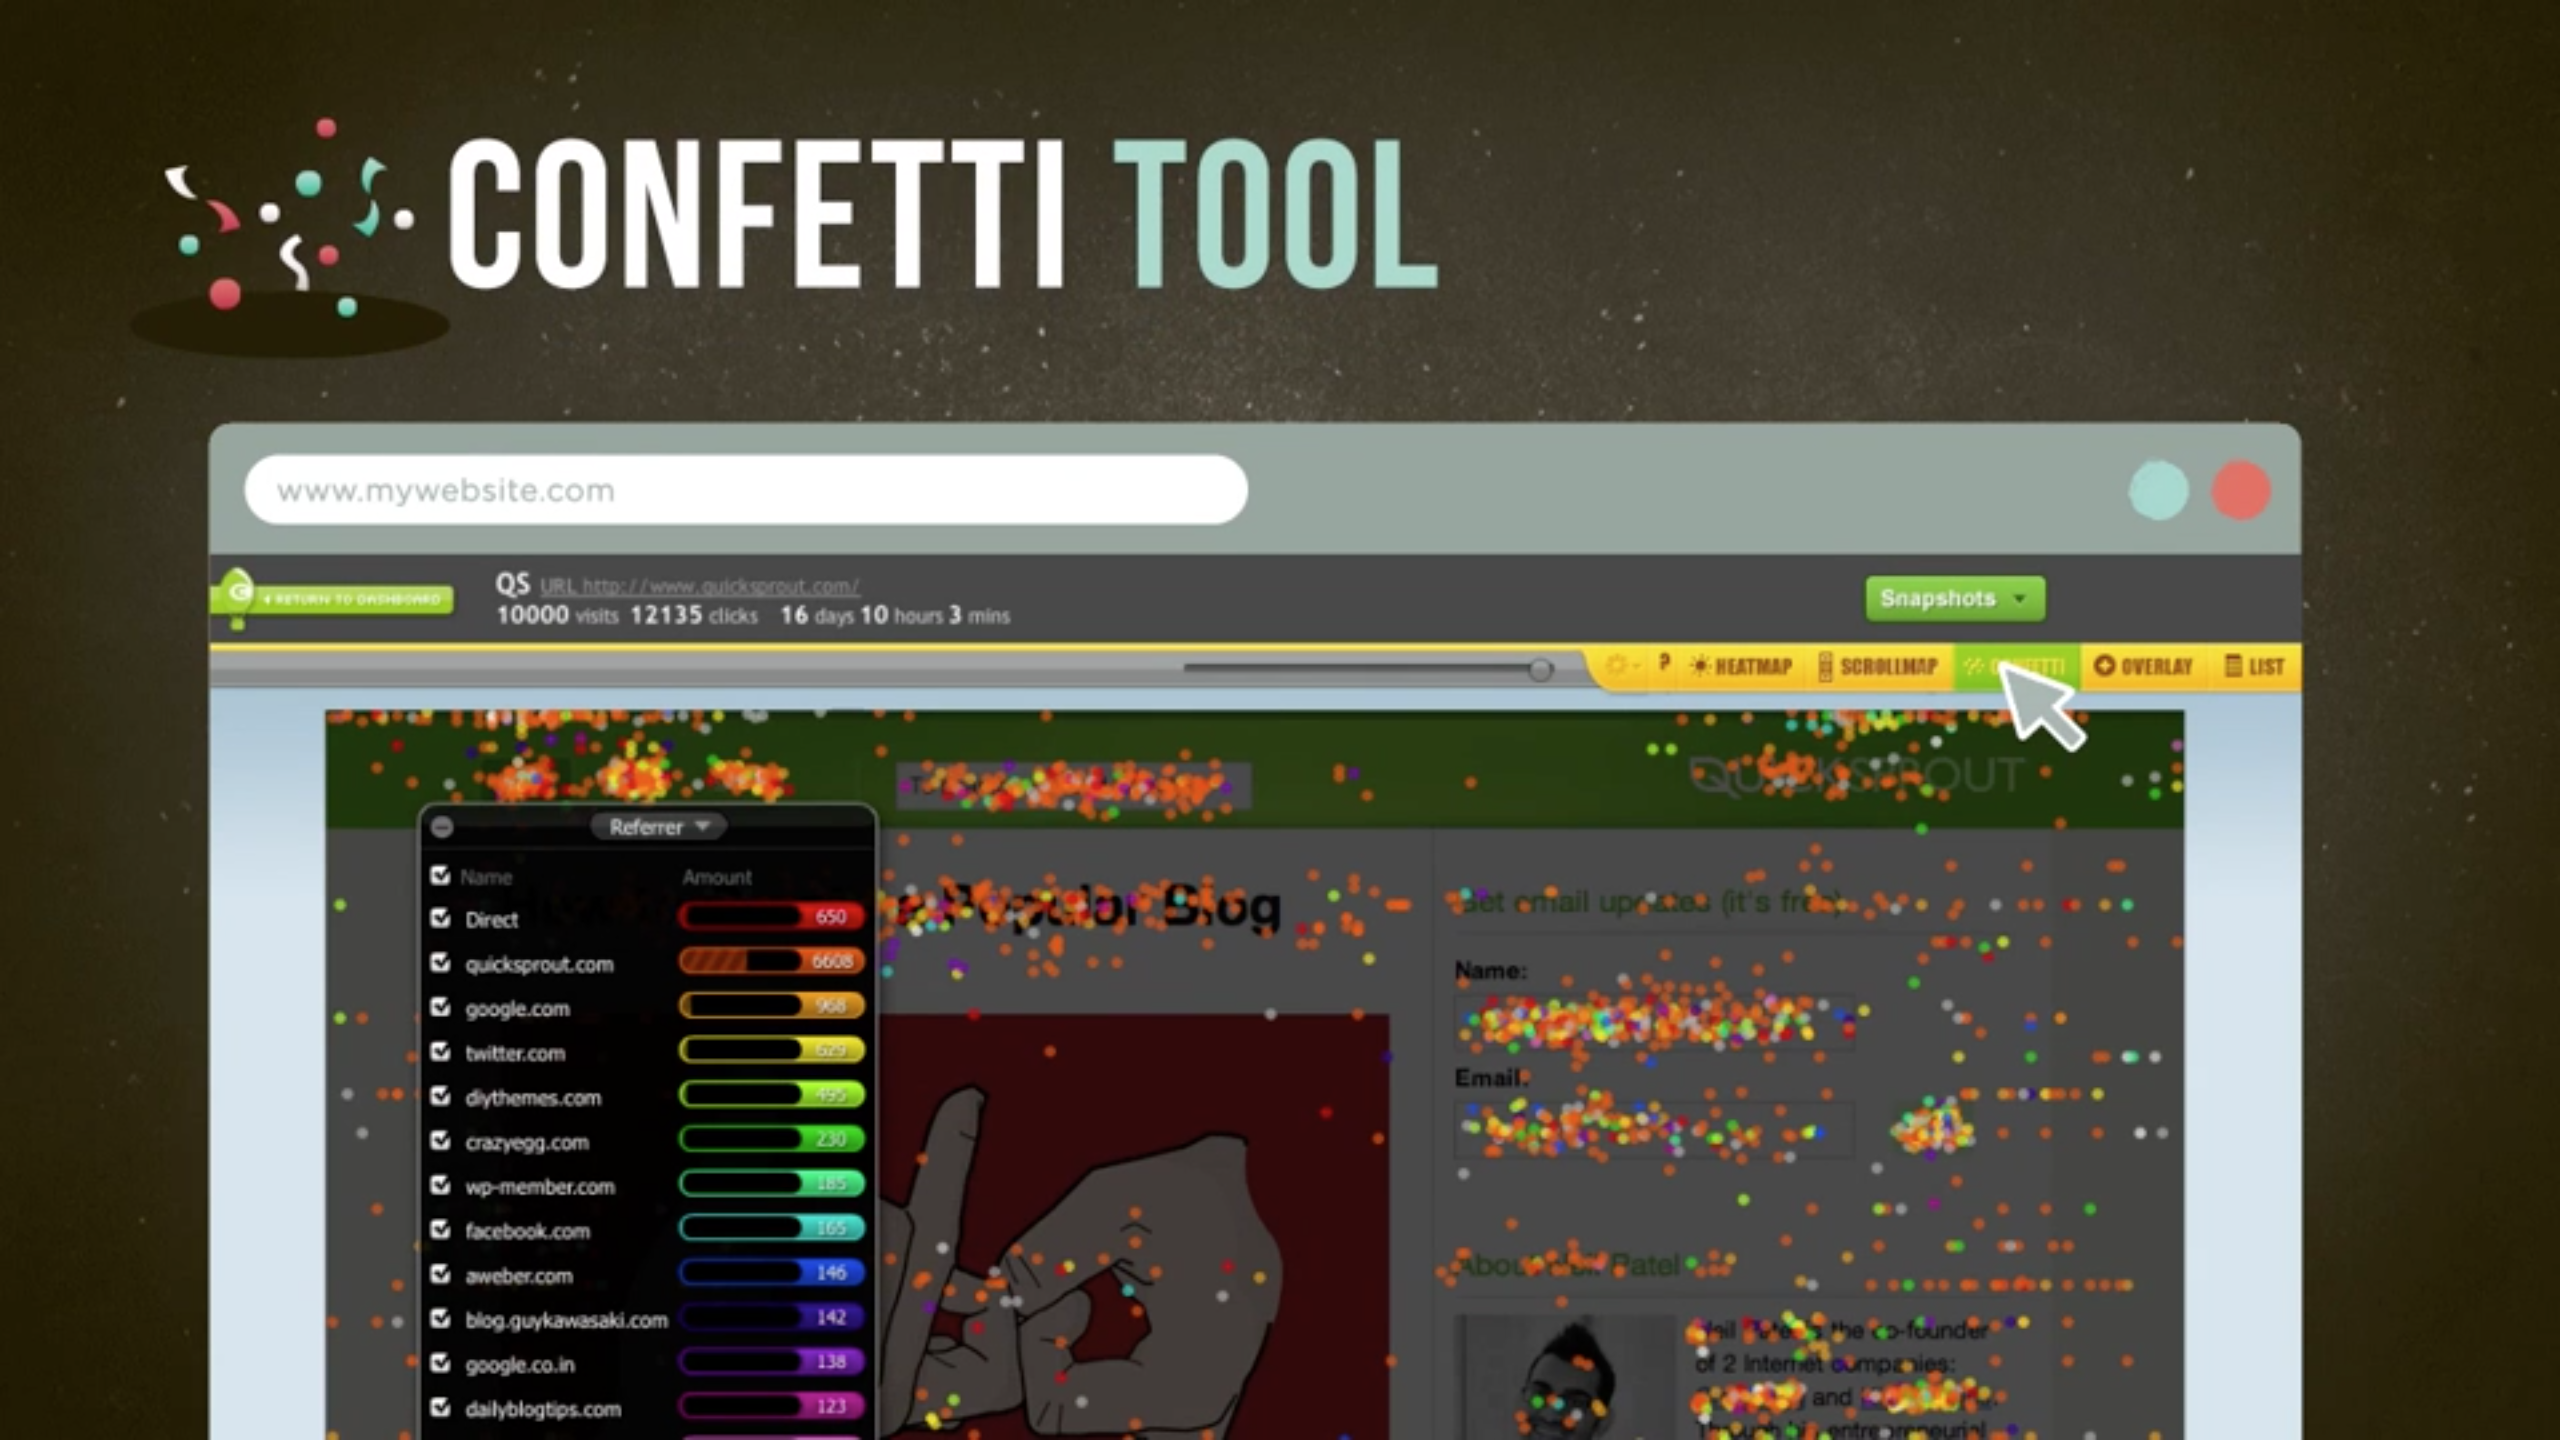 Confetti tool segments clicks based on referral source and search terms so teams can visualize how users found their page and how they interact with on-page elements